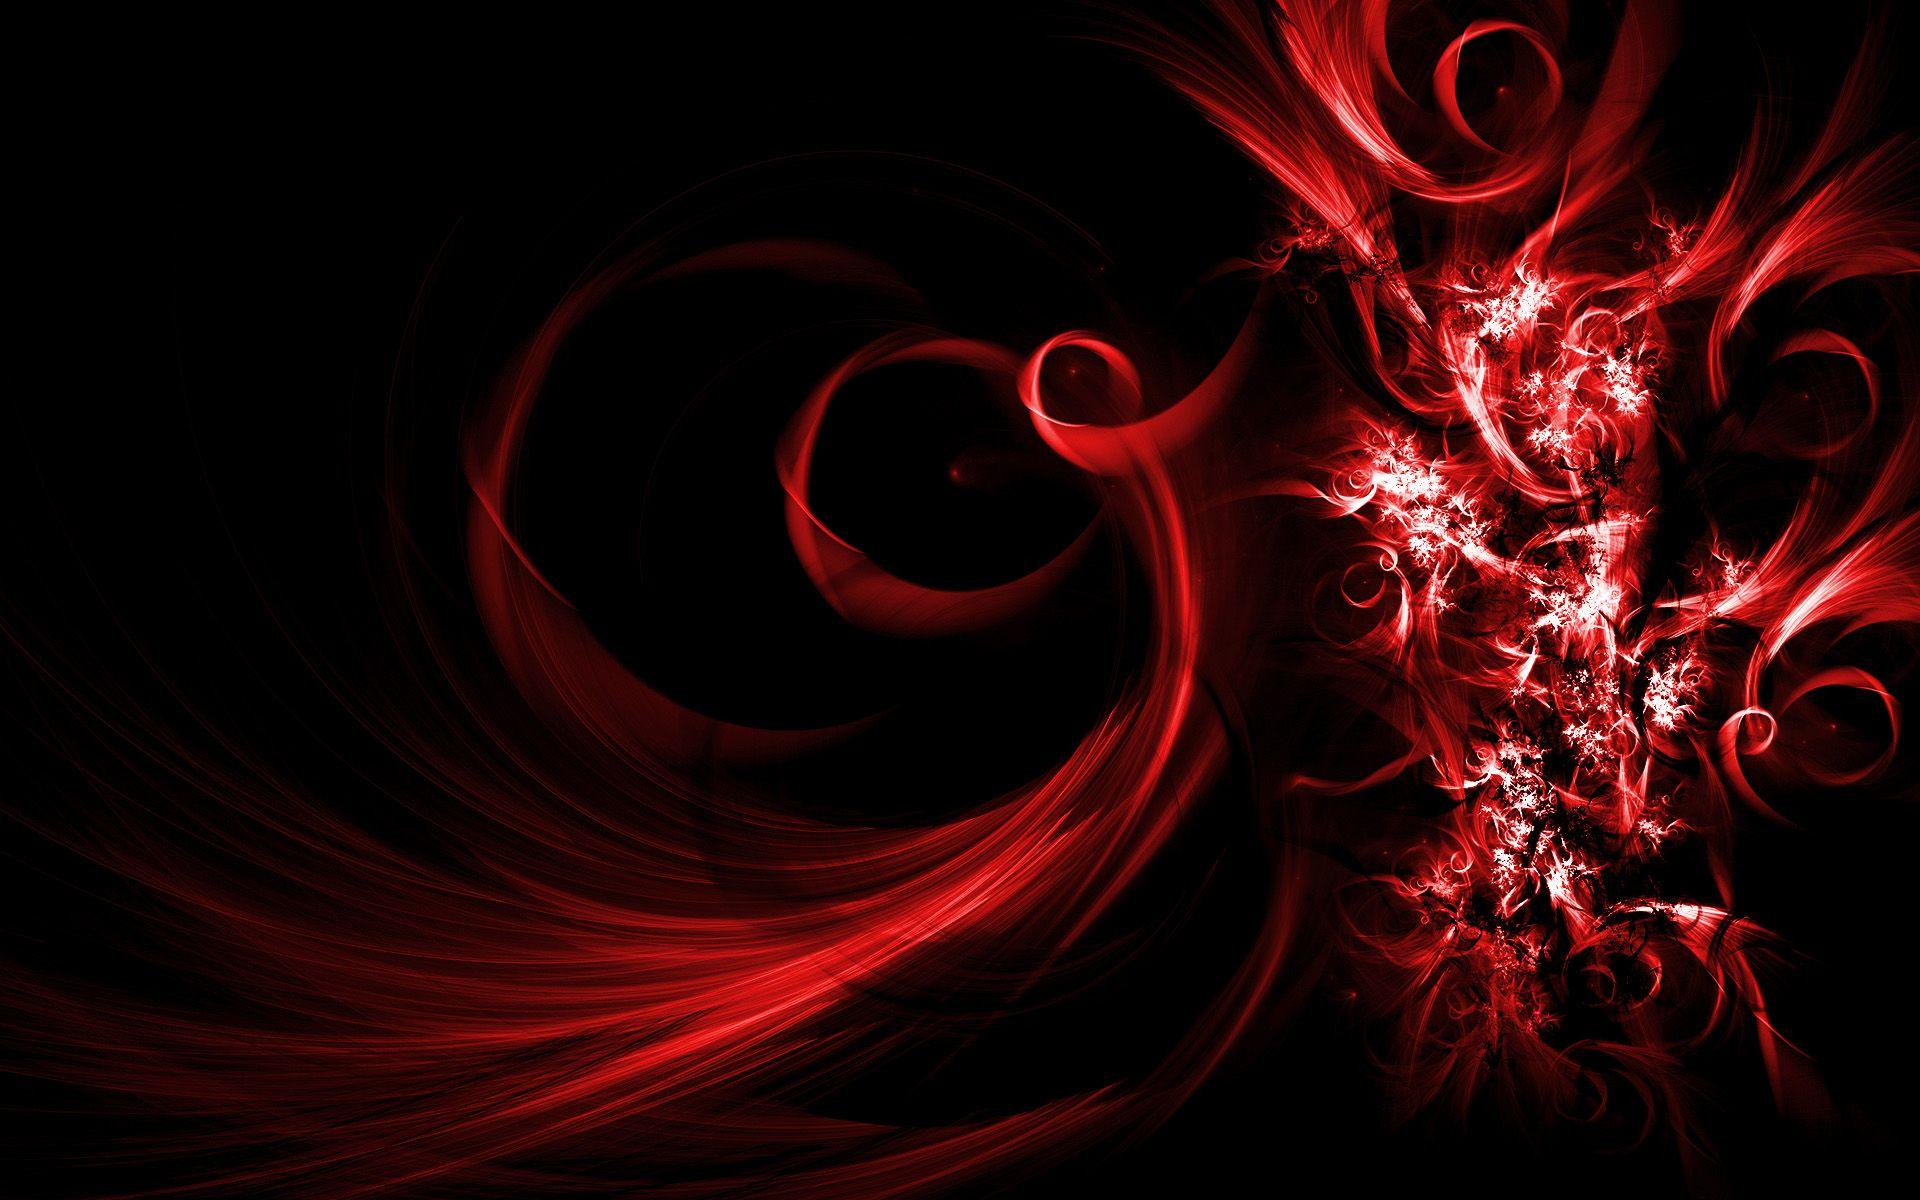 Wallpapers Red Hd Wallpaper Cave